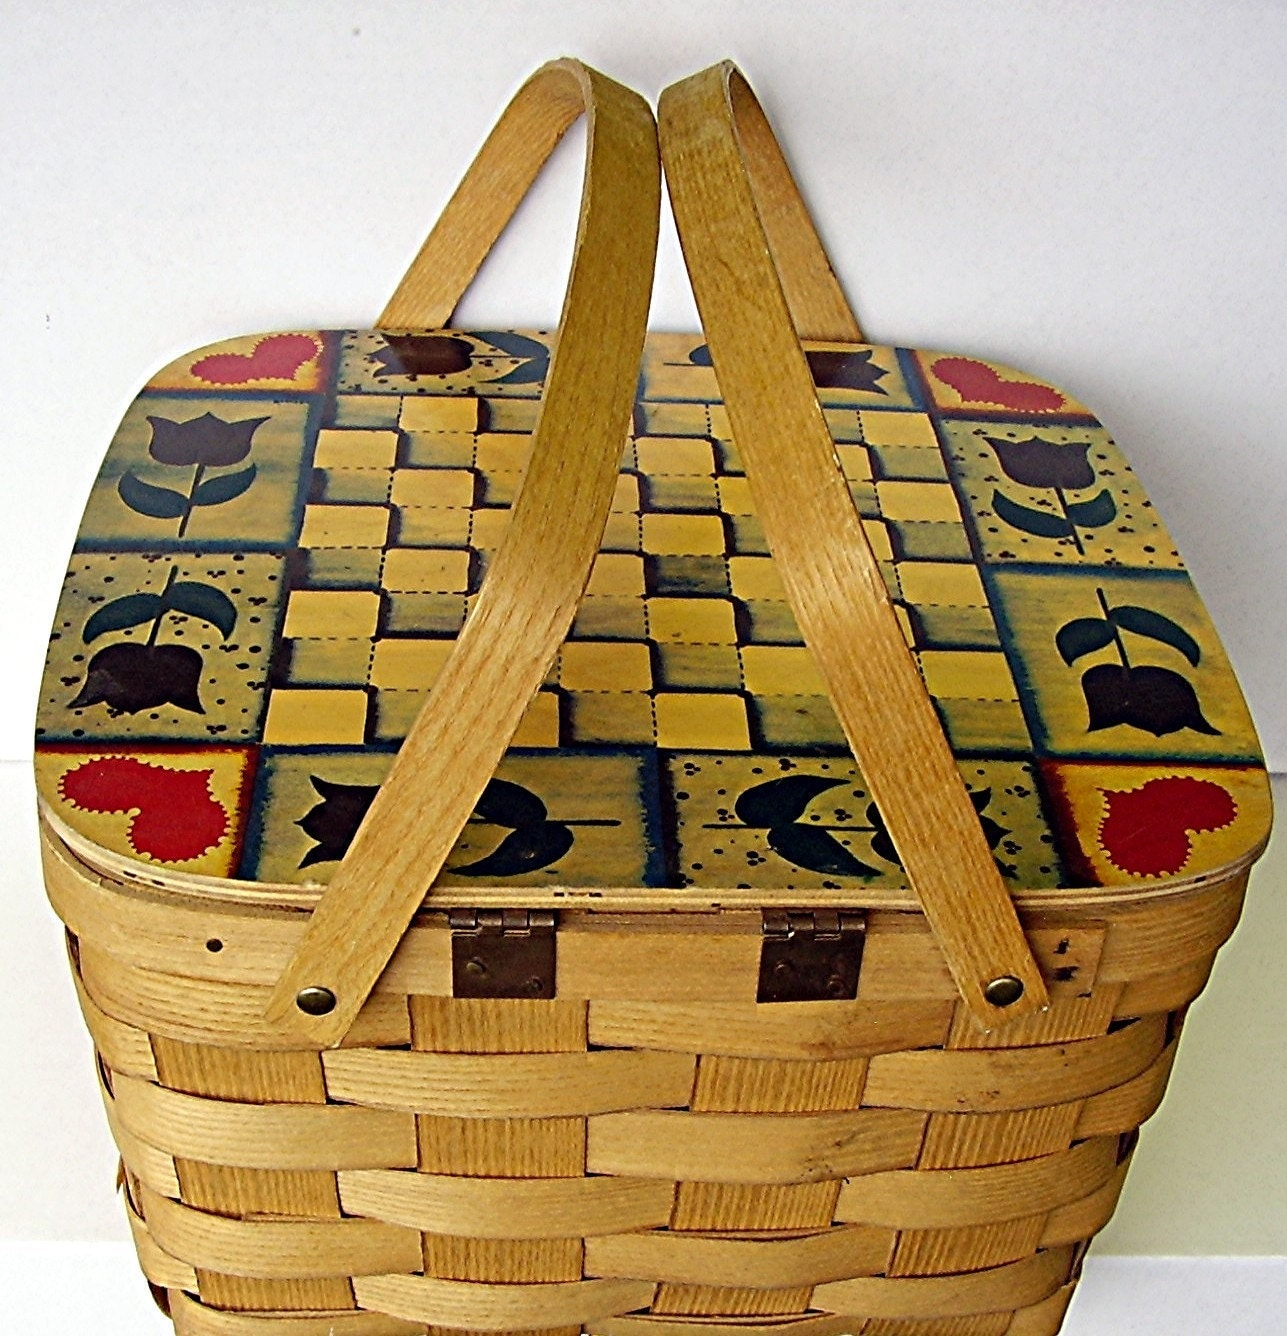 Picnic Basket Pie : Vintage picnic basket basketville pie carrier by